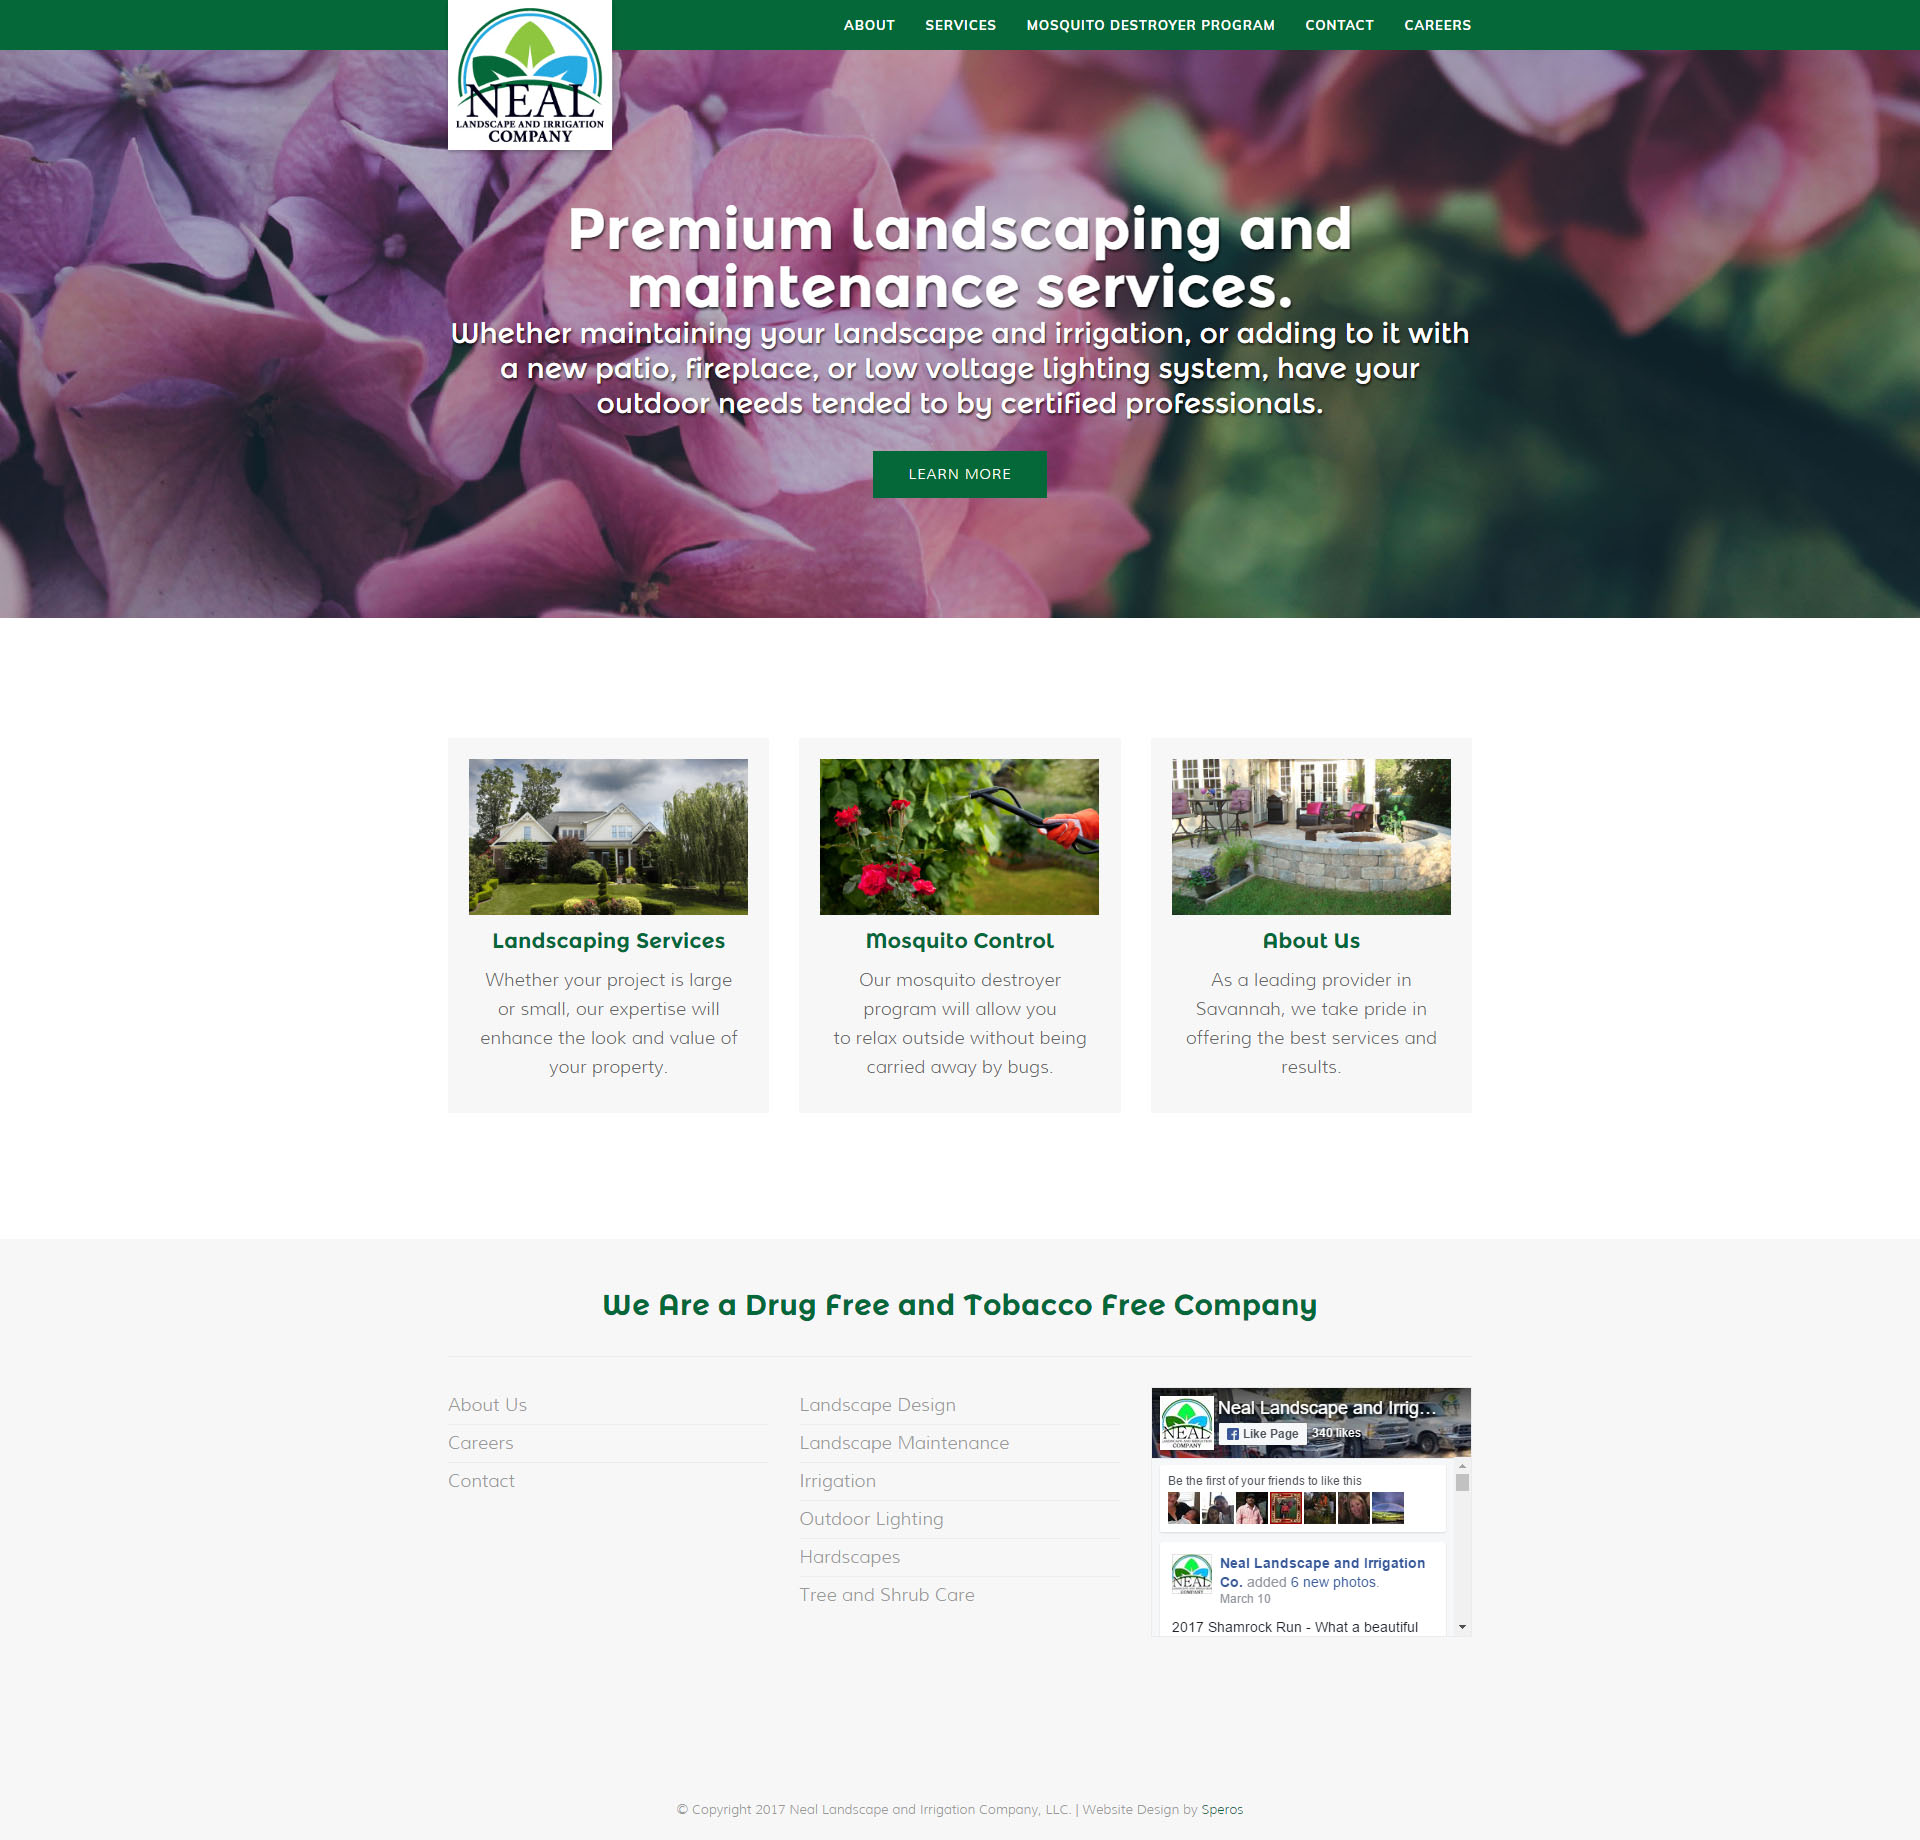 Neal Landscape and Irrigation Website